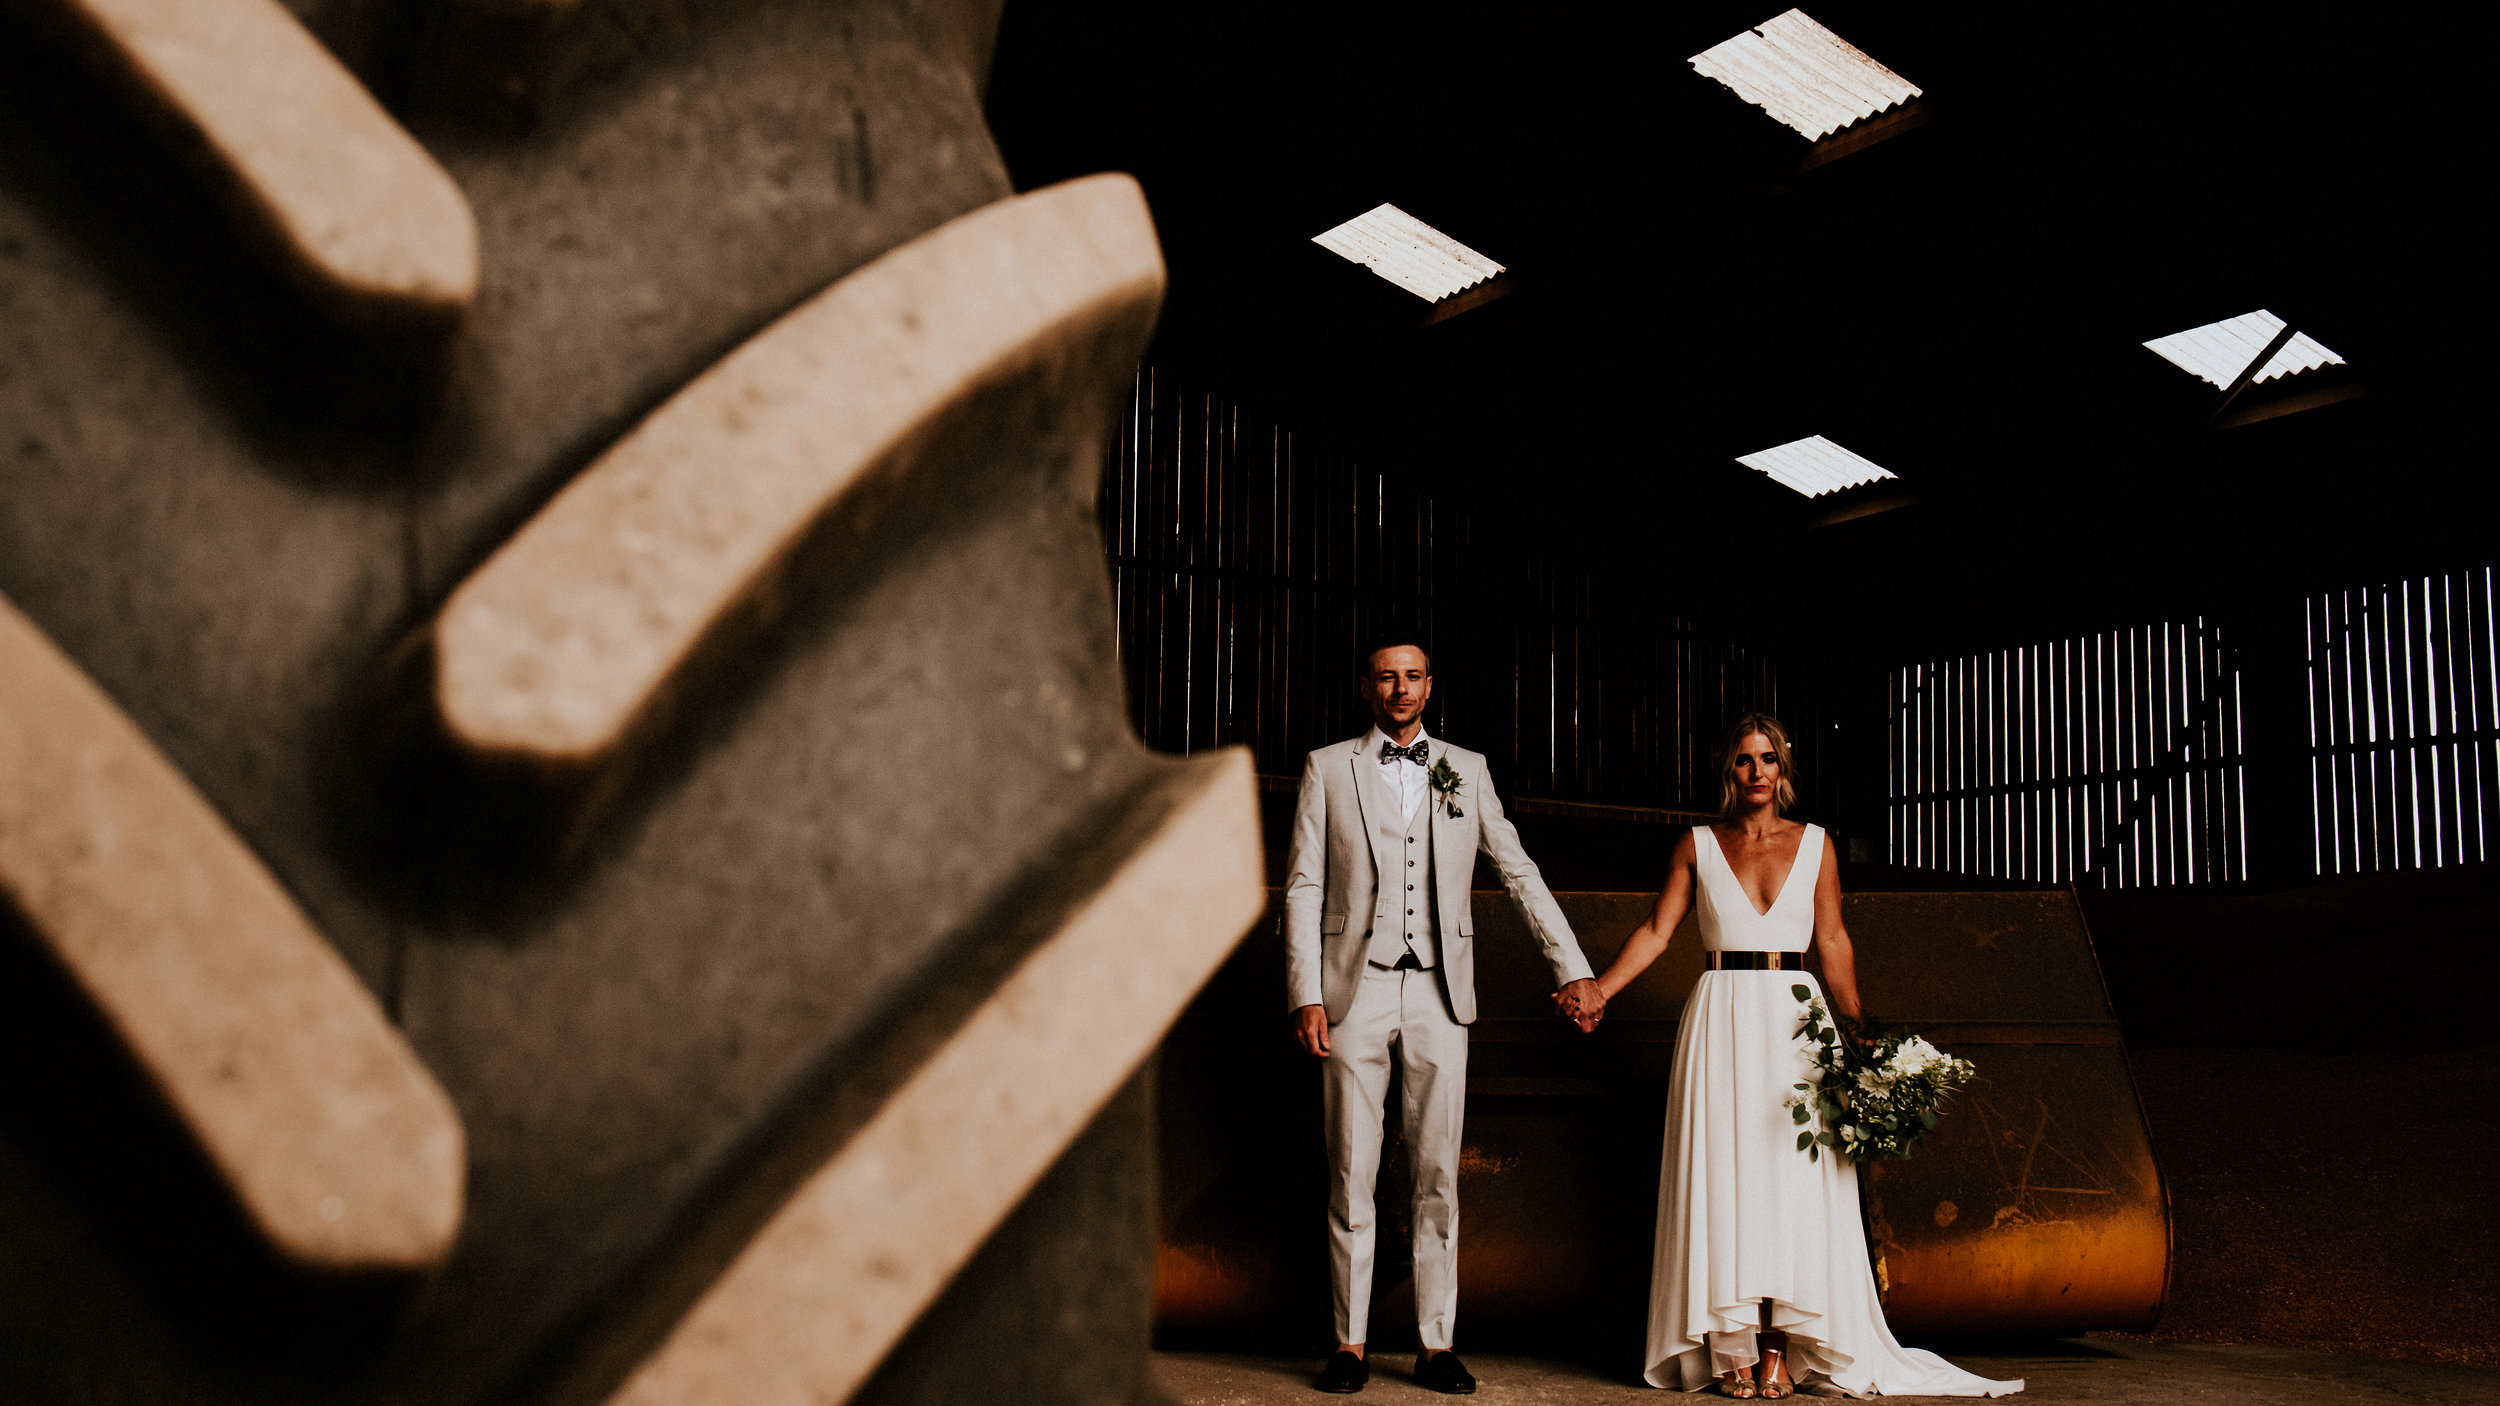 The ultimate York Barn wedding, Fairylight curtains, White VW camper vans, An etherial Dress from Ghose Orchid Bride, Farm machinery frames the love struck in this York wedding at the Normans